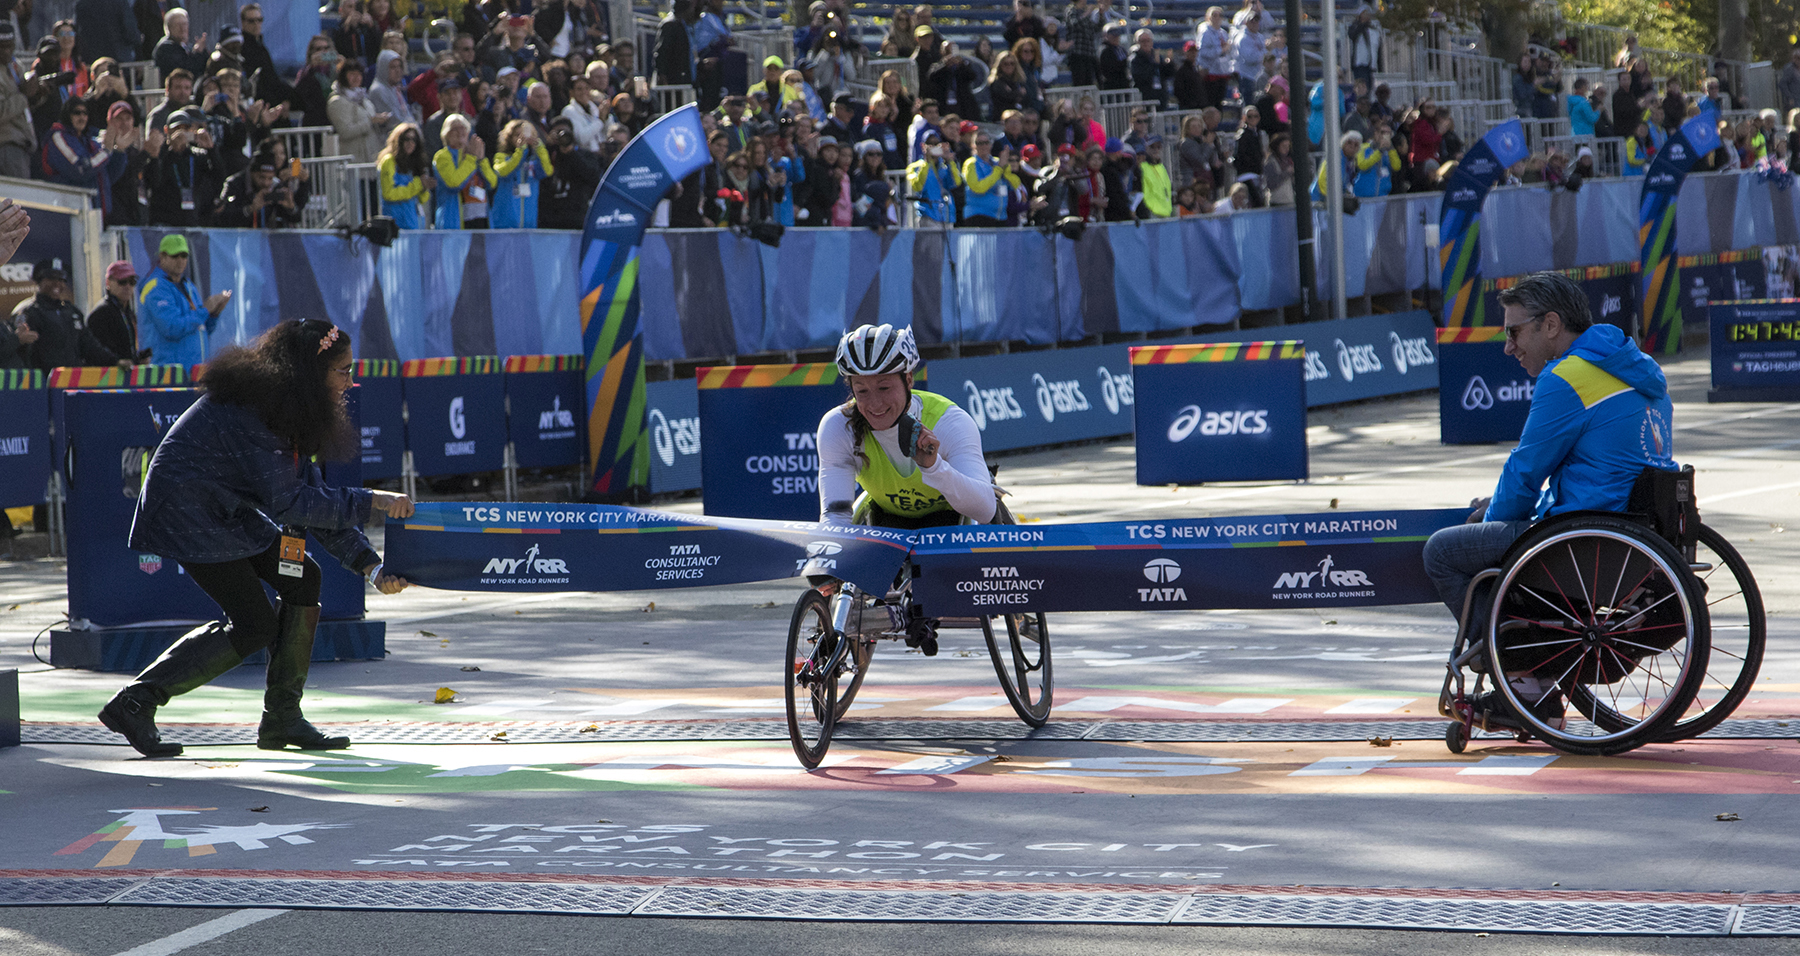 Tatyana McFadden winning the 2016 TCS New York City Marathon